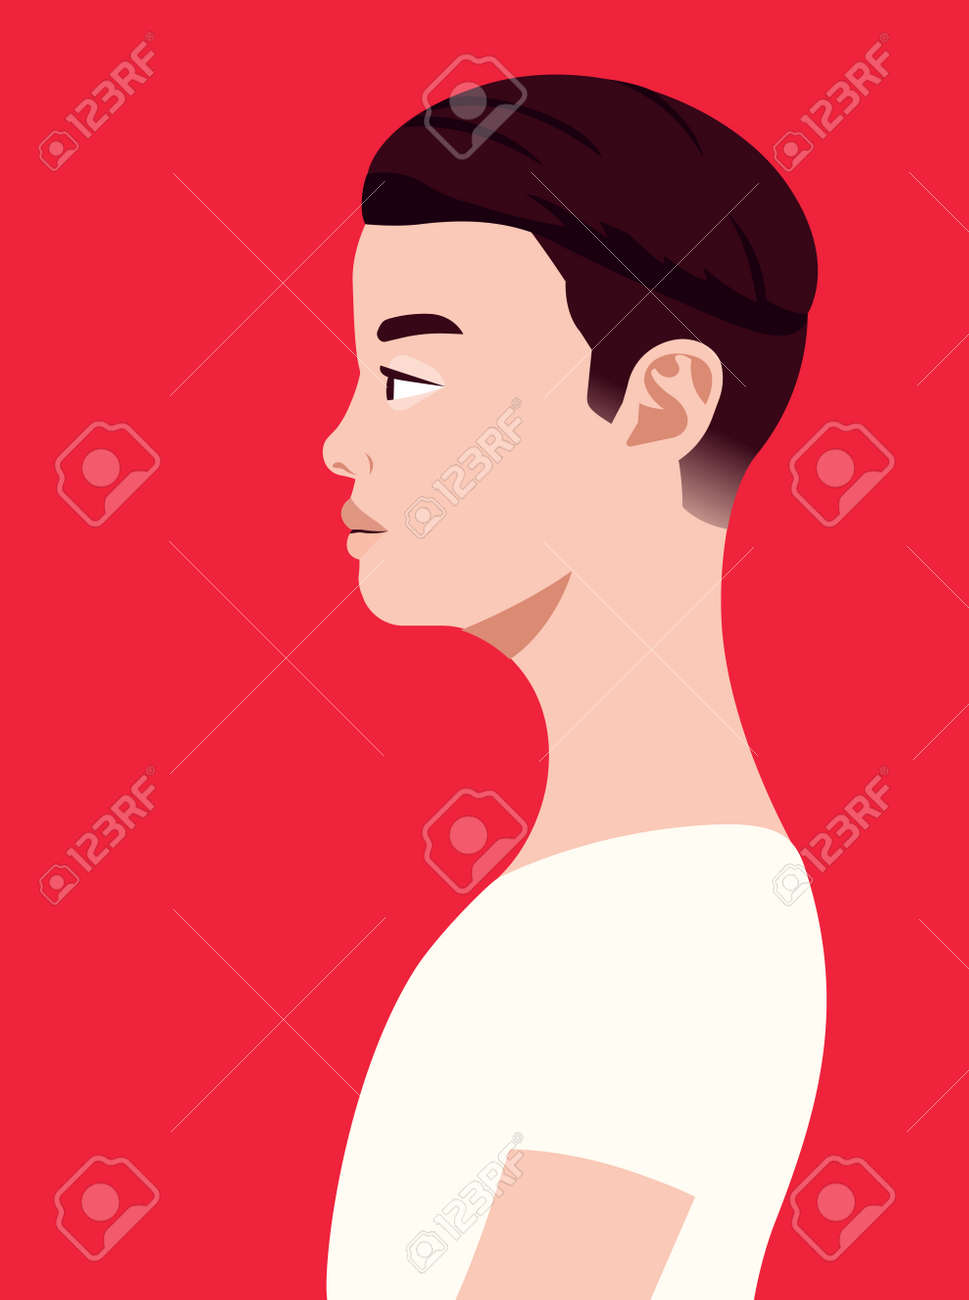 Handsome asian man of side view. Human simplicity of the globalized world. - 168070210